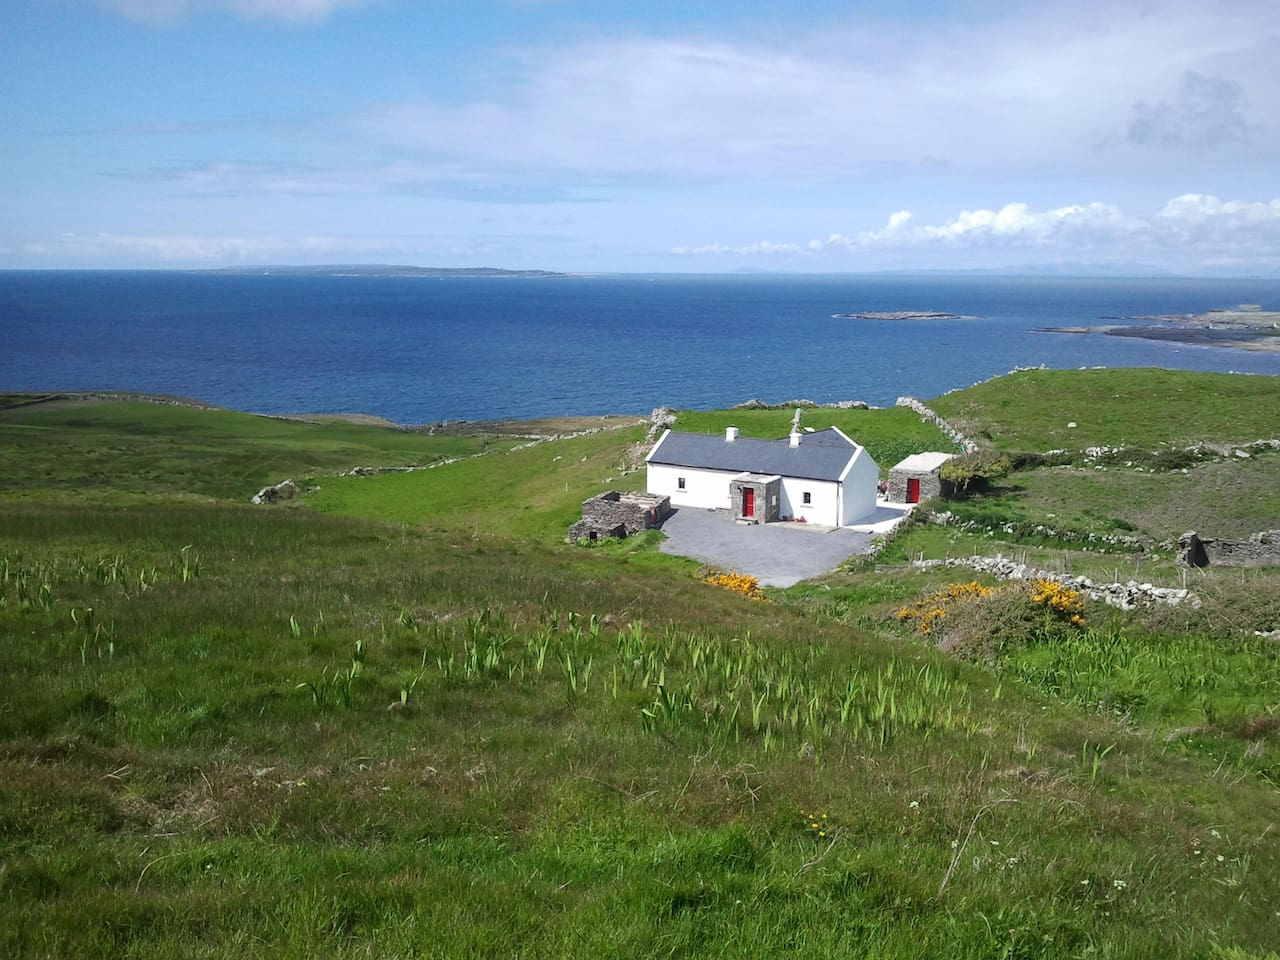 The Russell Cottage, Doolin, Co. Clare with The Aran Islands in the background